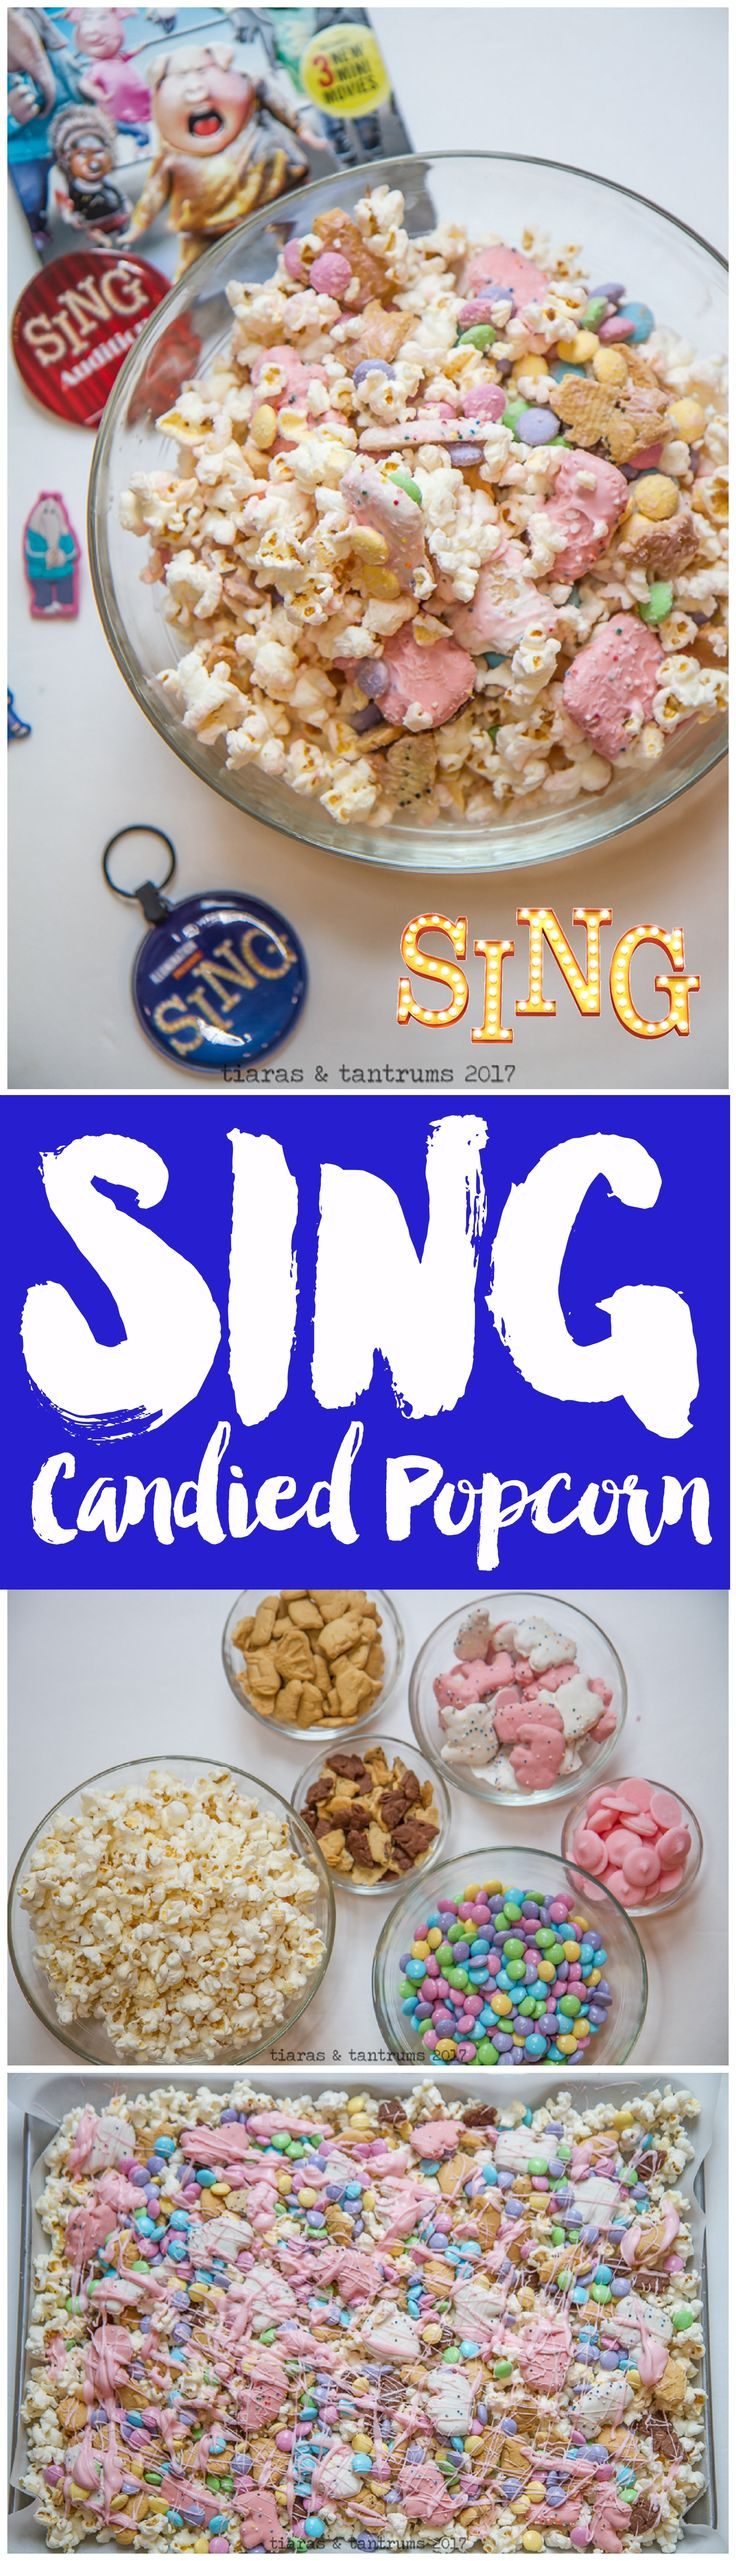 Popcorn Crunch Mix to celebrate the SING Movie. SING Movie Party Ideas and Tips and Food. Popcorn with Animal Crackers, Frosted Animal Crackers, Cookies and M&Ms Easter Candy. This is perfect for Easter as well as Spring celebrations and Kid's parties! | https://www.tiarastantrums.com/blog/sing-candied-popcorn-mix